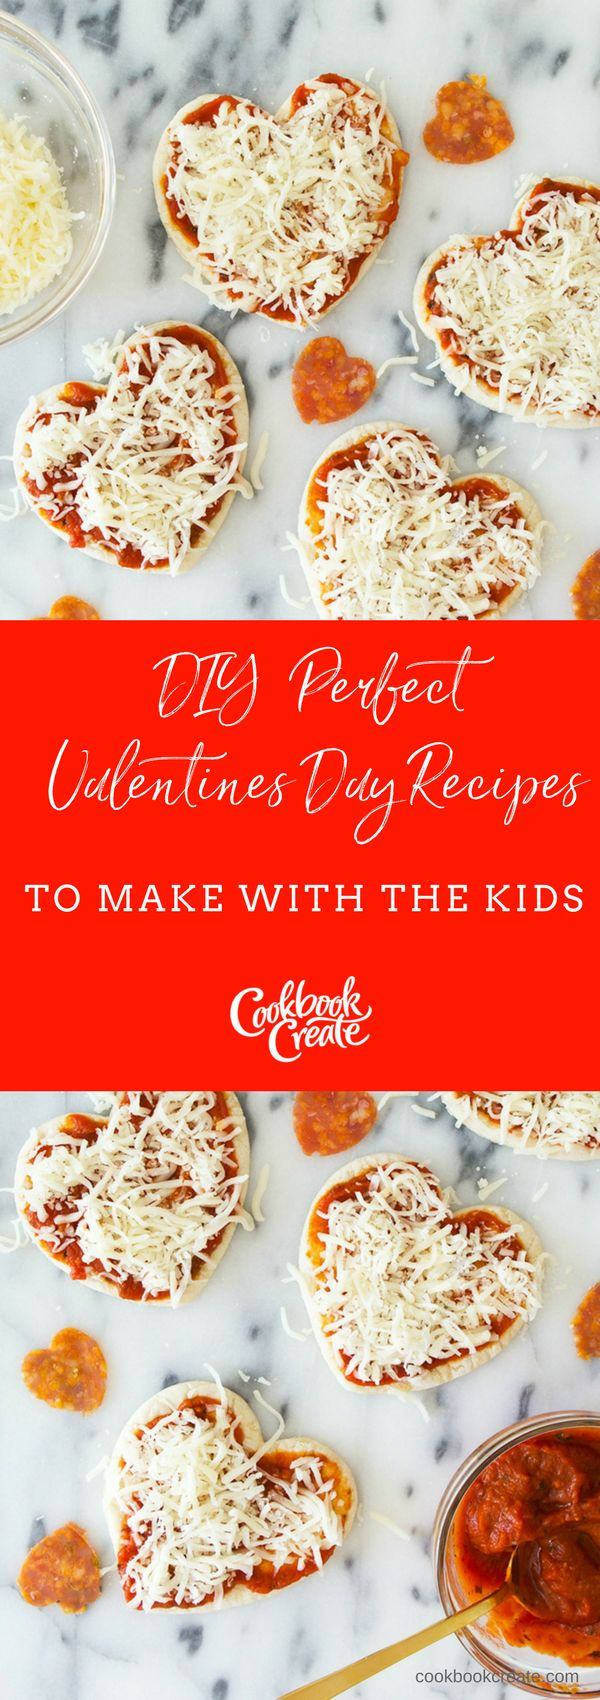 These heart shaped pizzas are so much fun to make with your little ones. Check out this kid friendly DIY for an extra special Valentine's Day. | Create your personalized cookbook with your recipes and photos at www.CookbookCreate.com